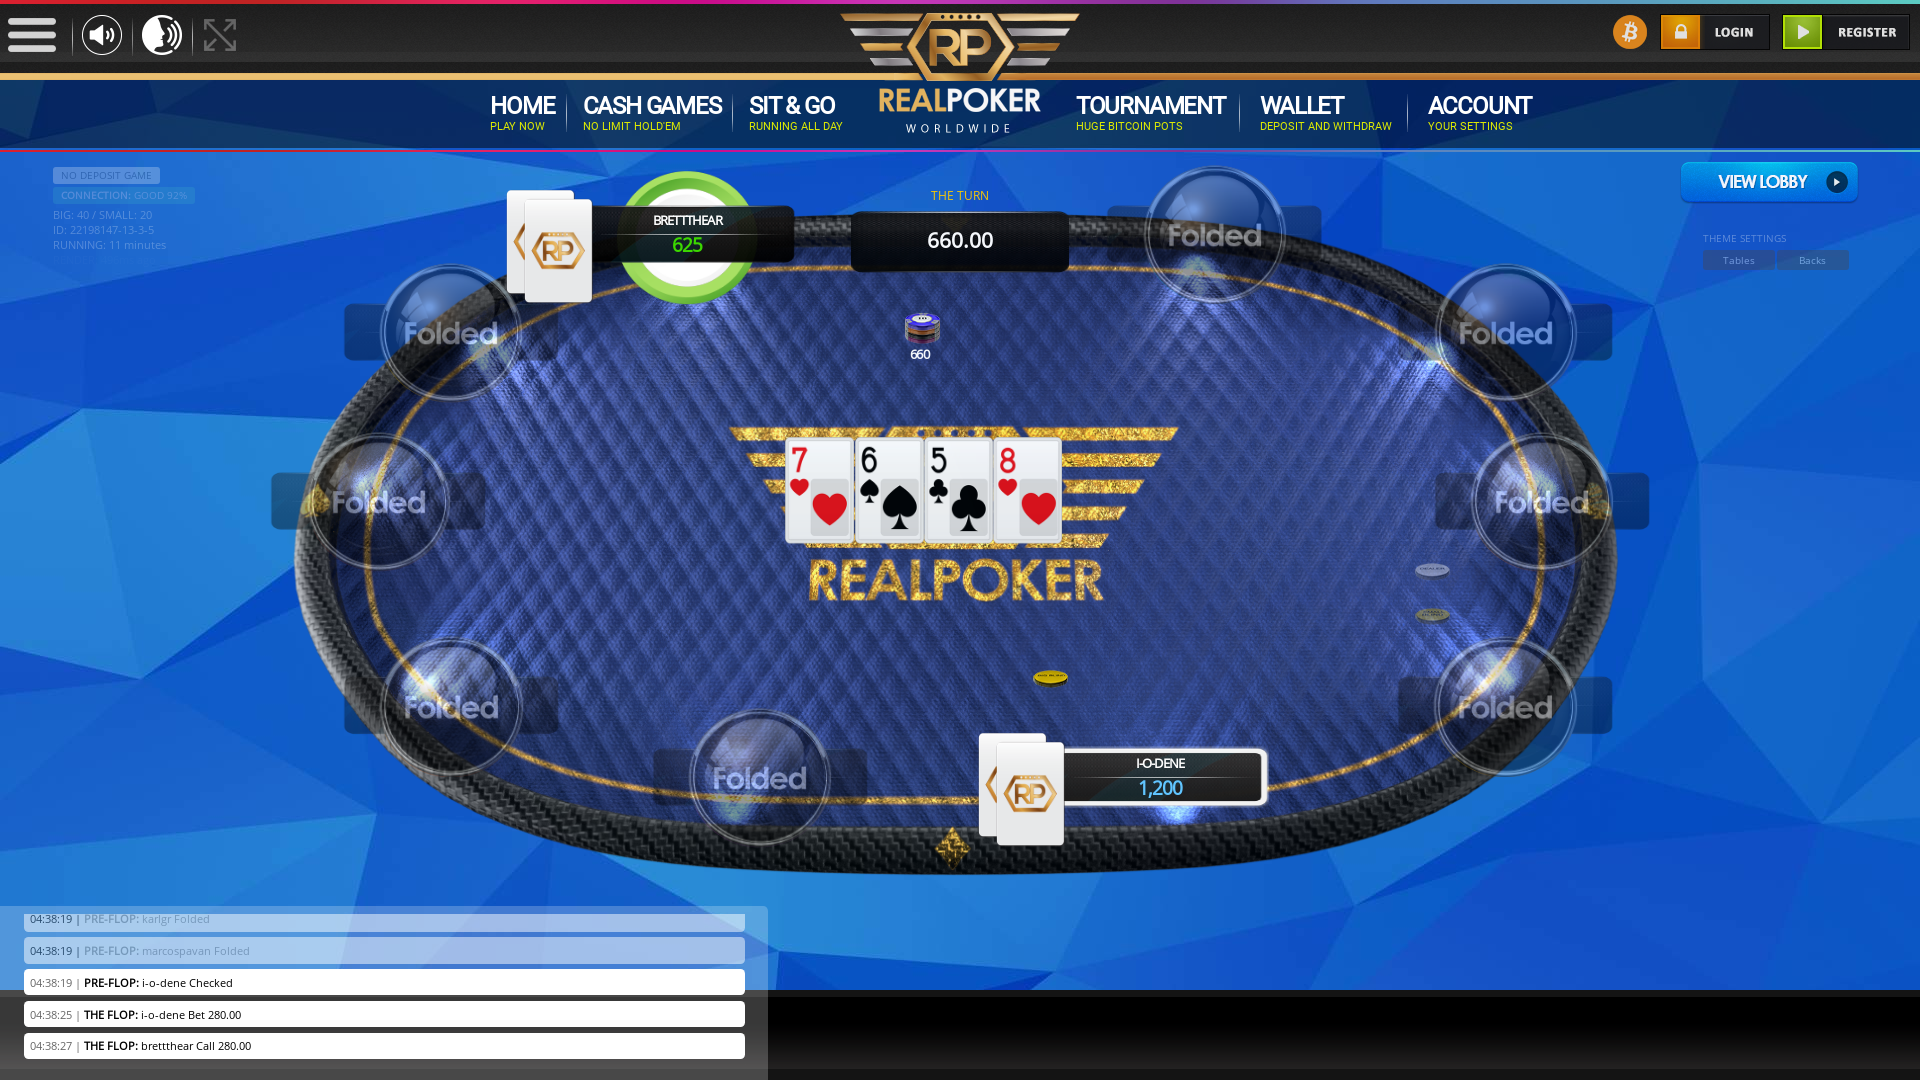 Slovenia Casino Bitcoin Poker from August